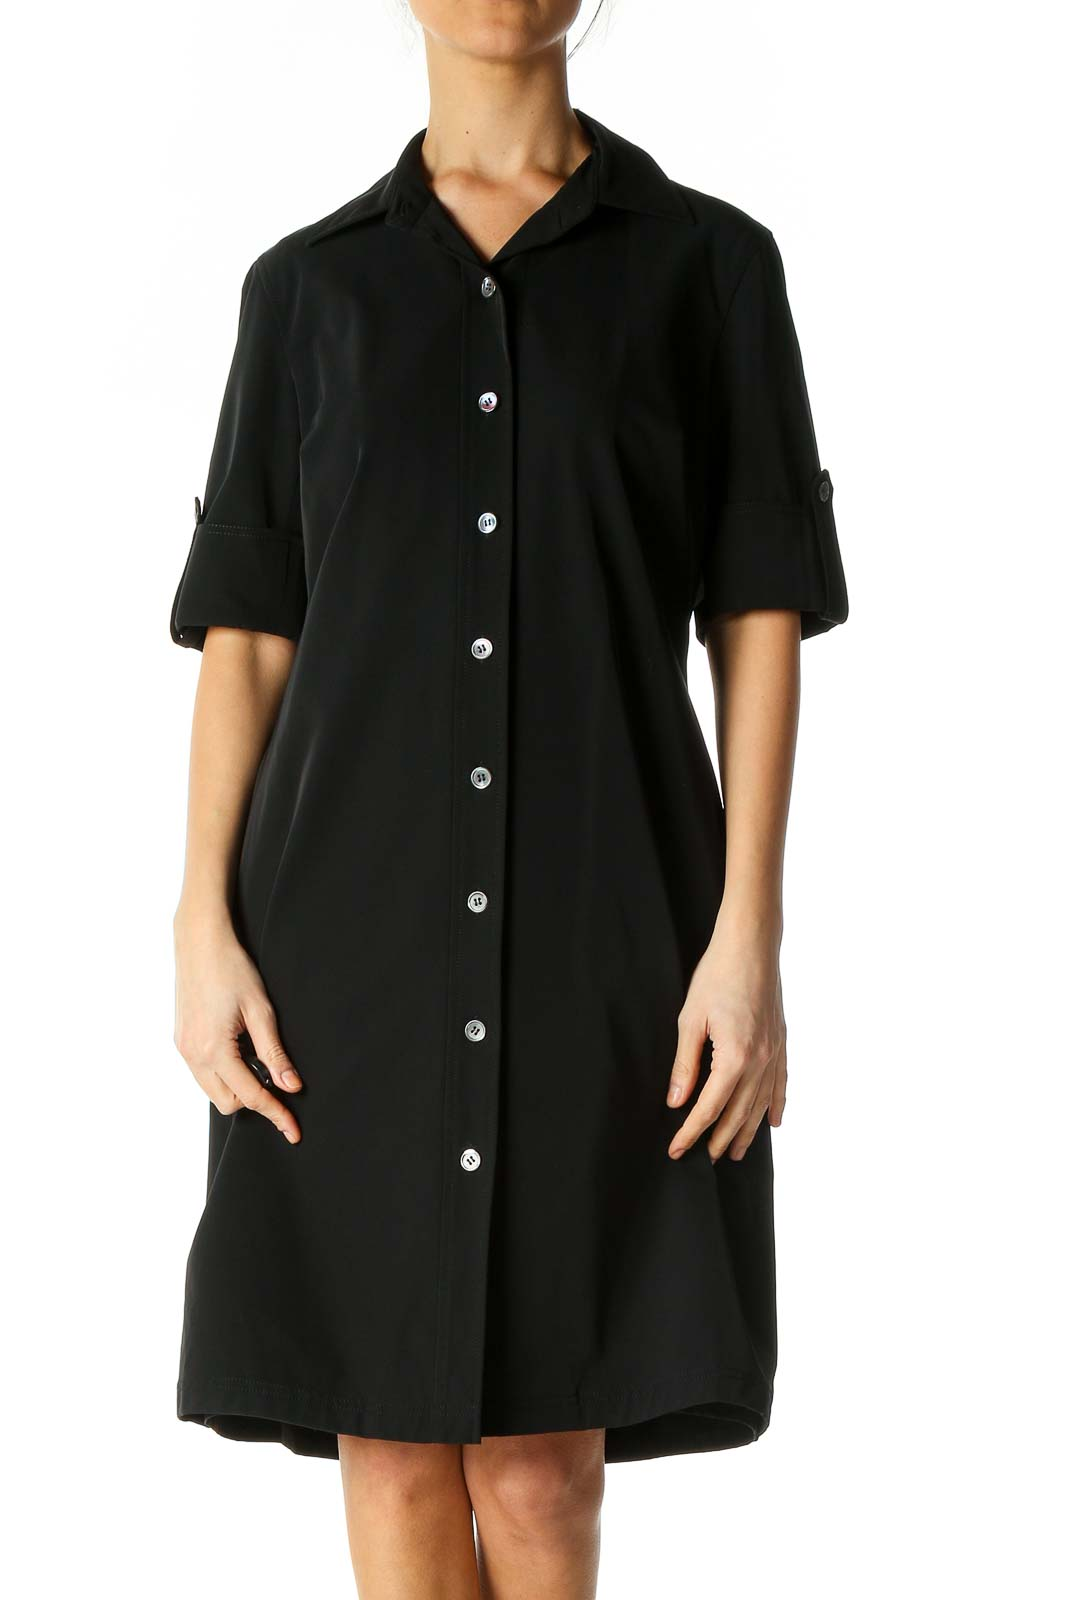 Black Solid Casual Shift Dress Front